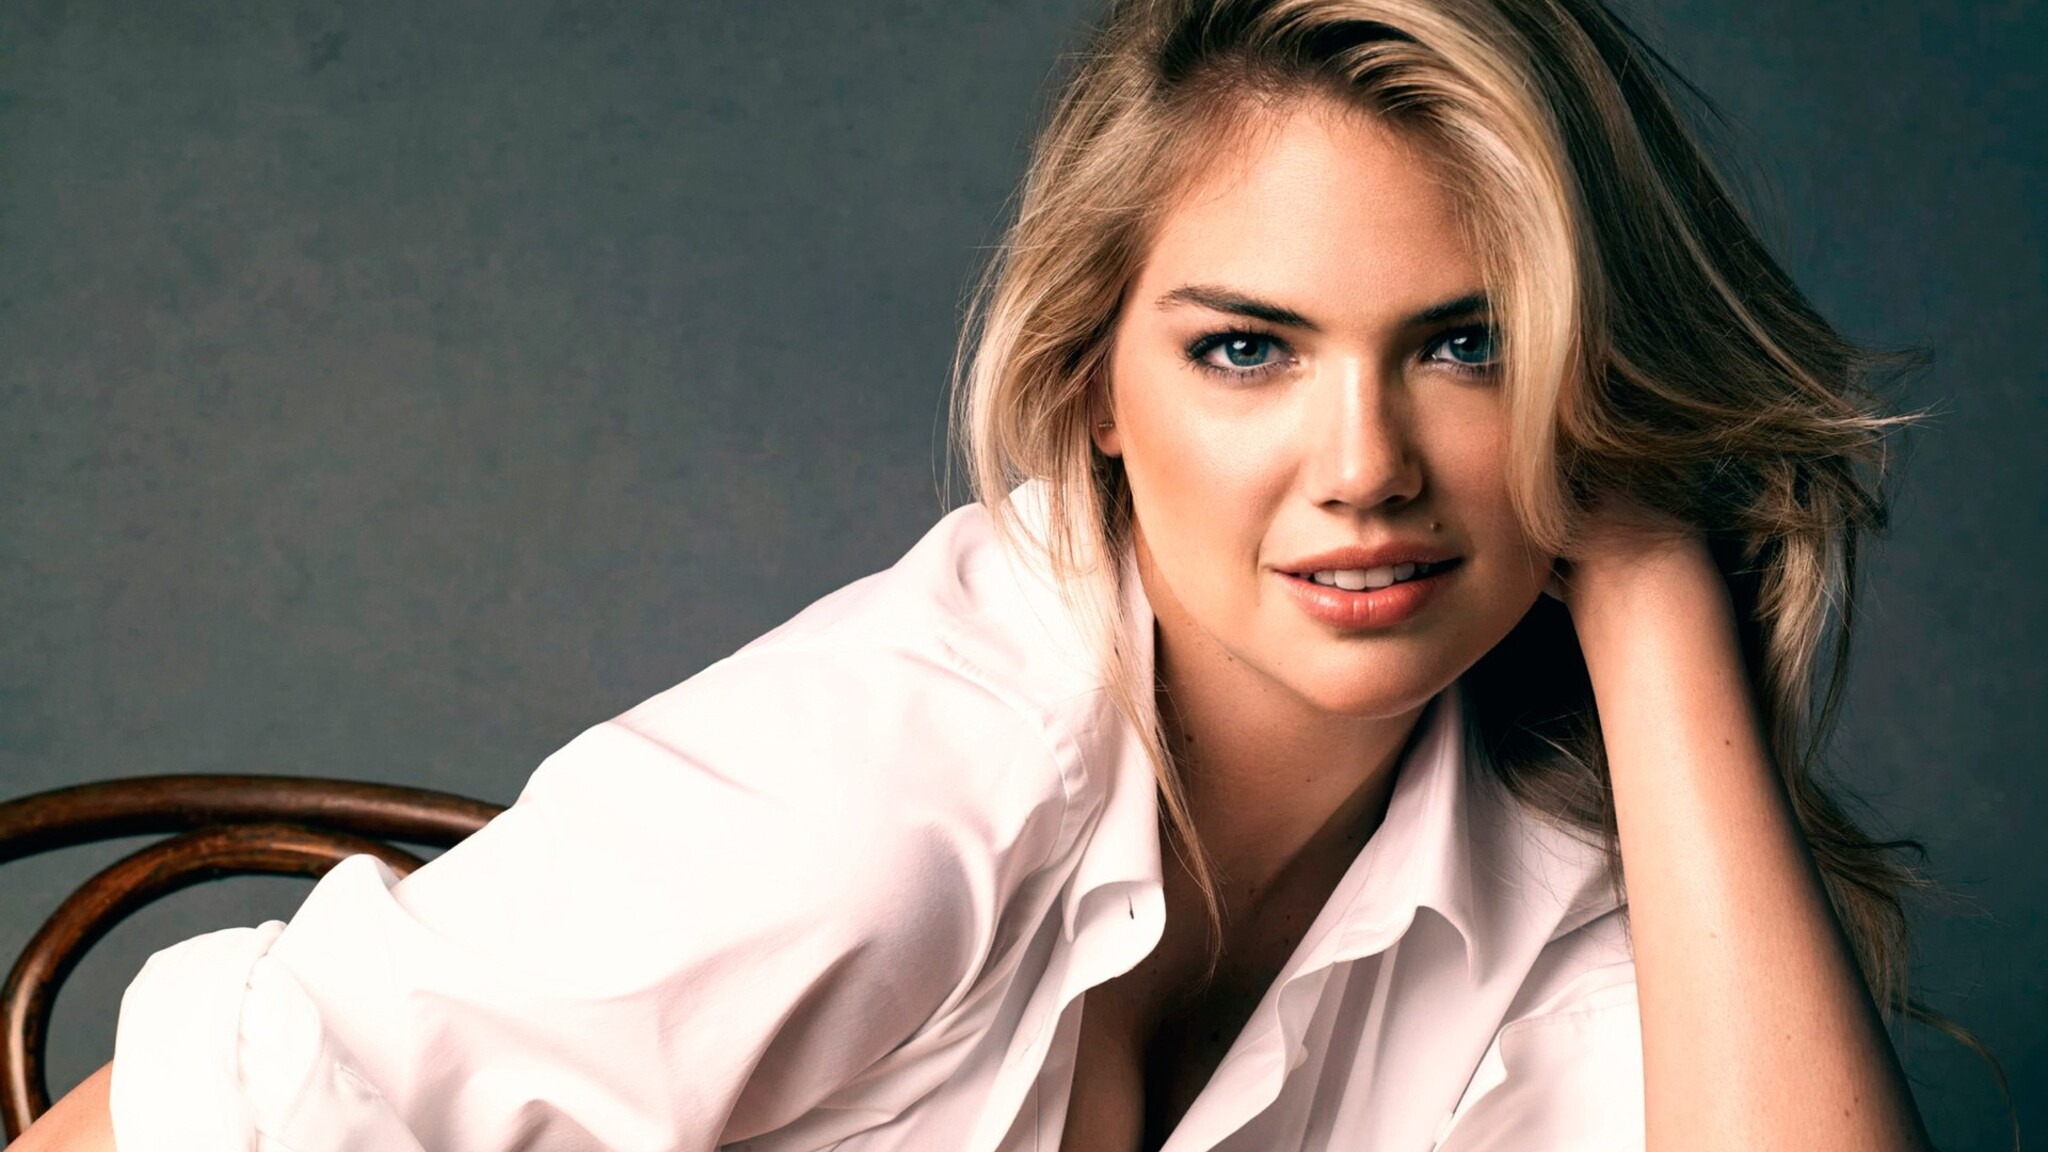 2048x1152 kate upton 2048x1152 resolution hd 4k wallpapers images kate uptong voltagebd Images